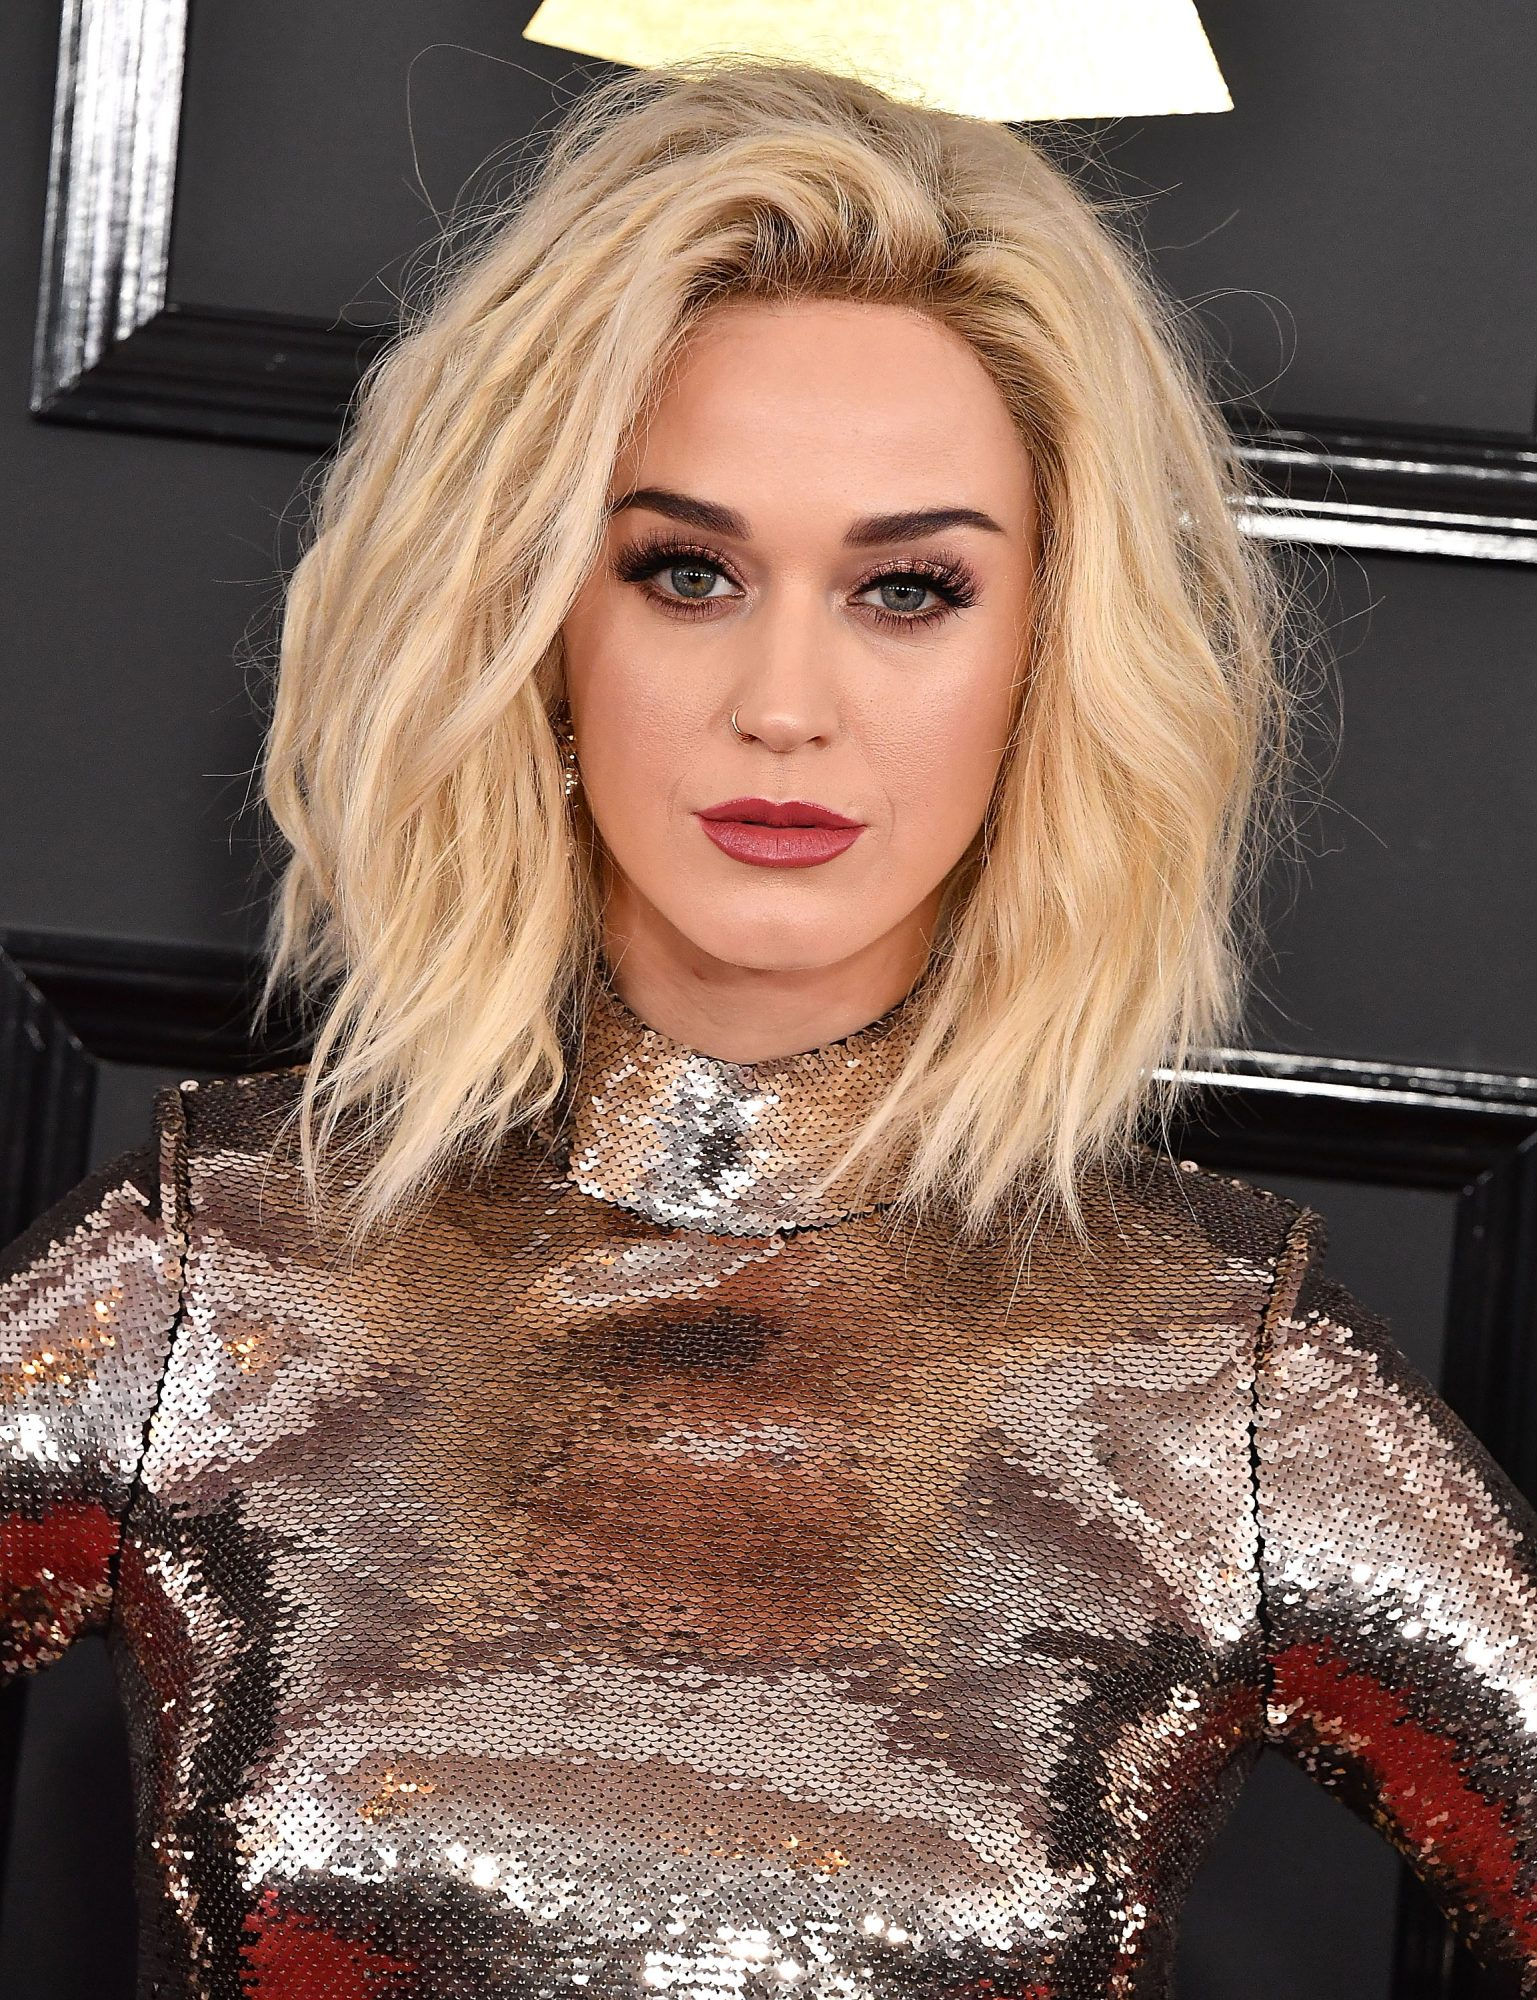 Katy Perry Debuted Her New COVERGIRL Line at the Grammys